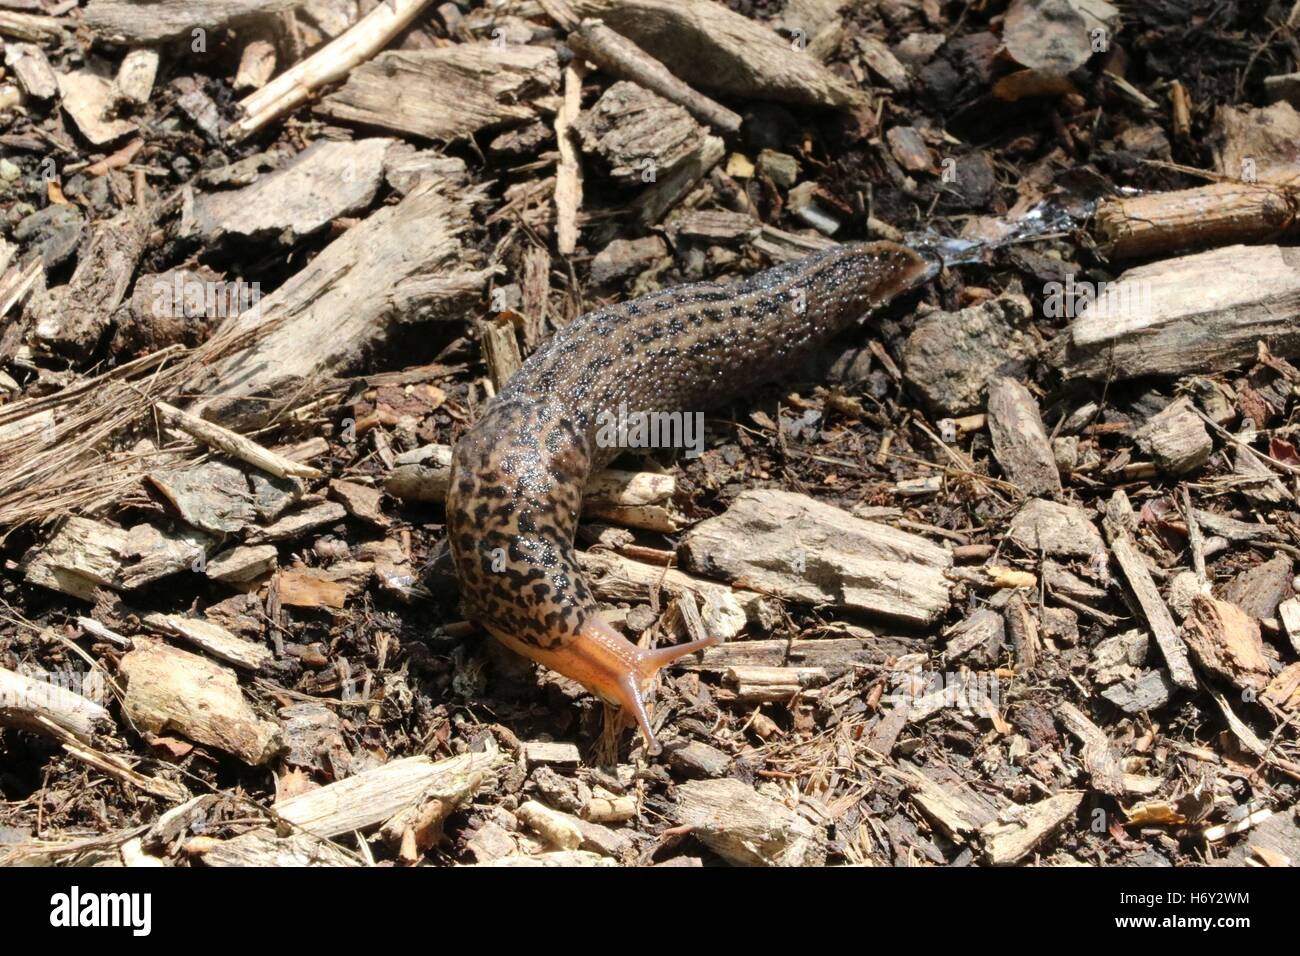 tiger slug crawling on the gorund available in high-resolution and